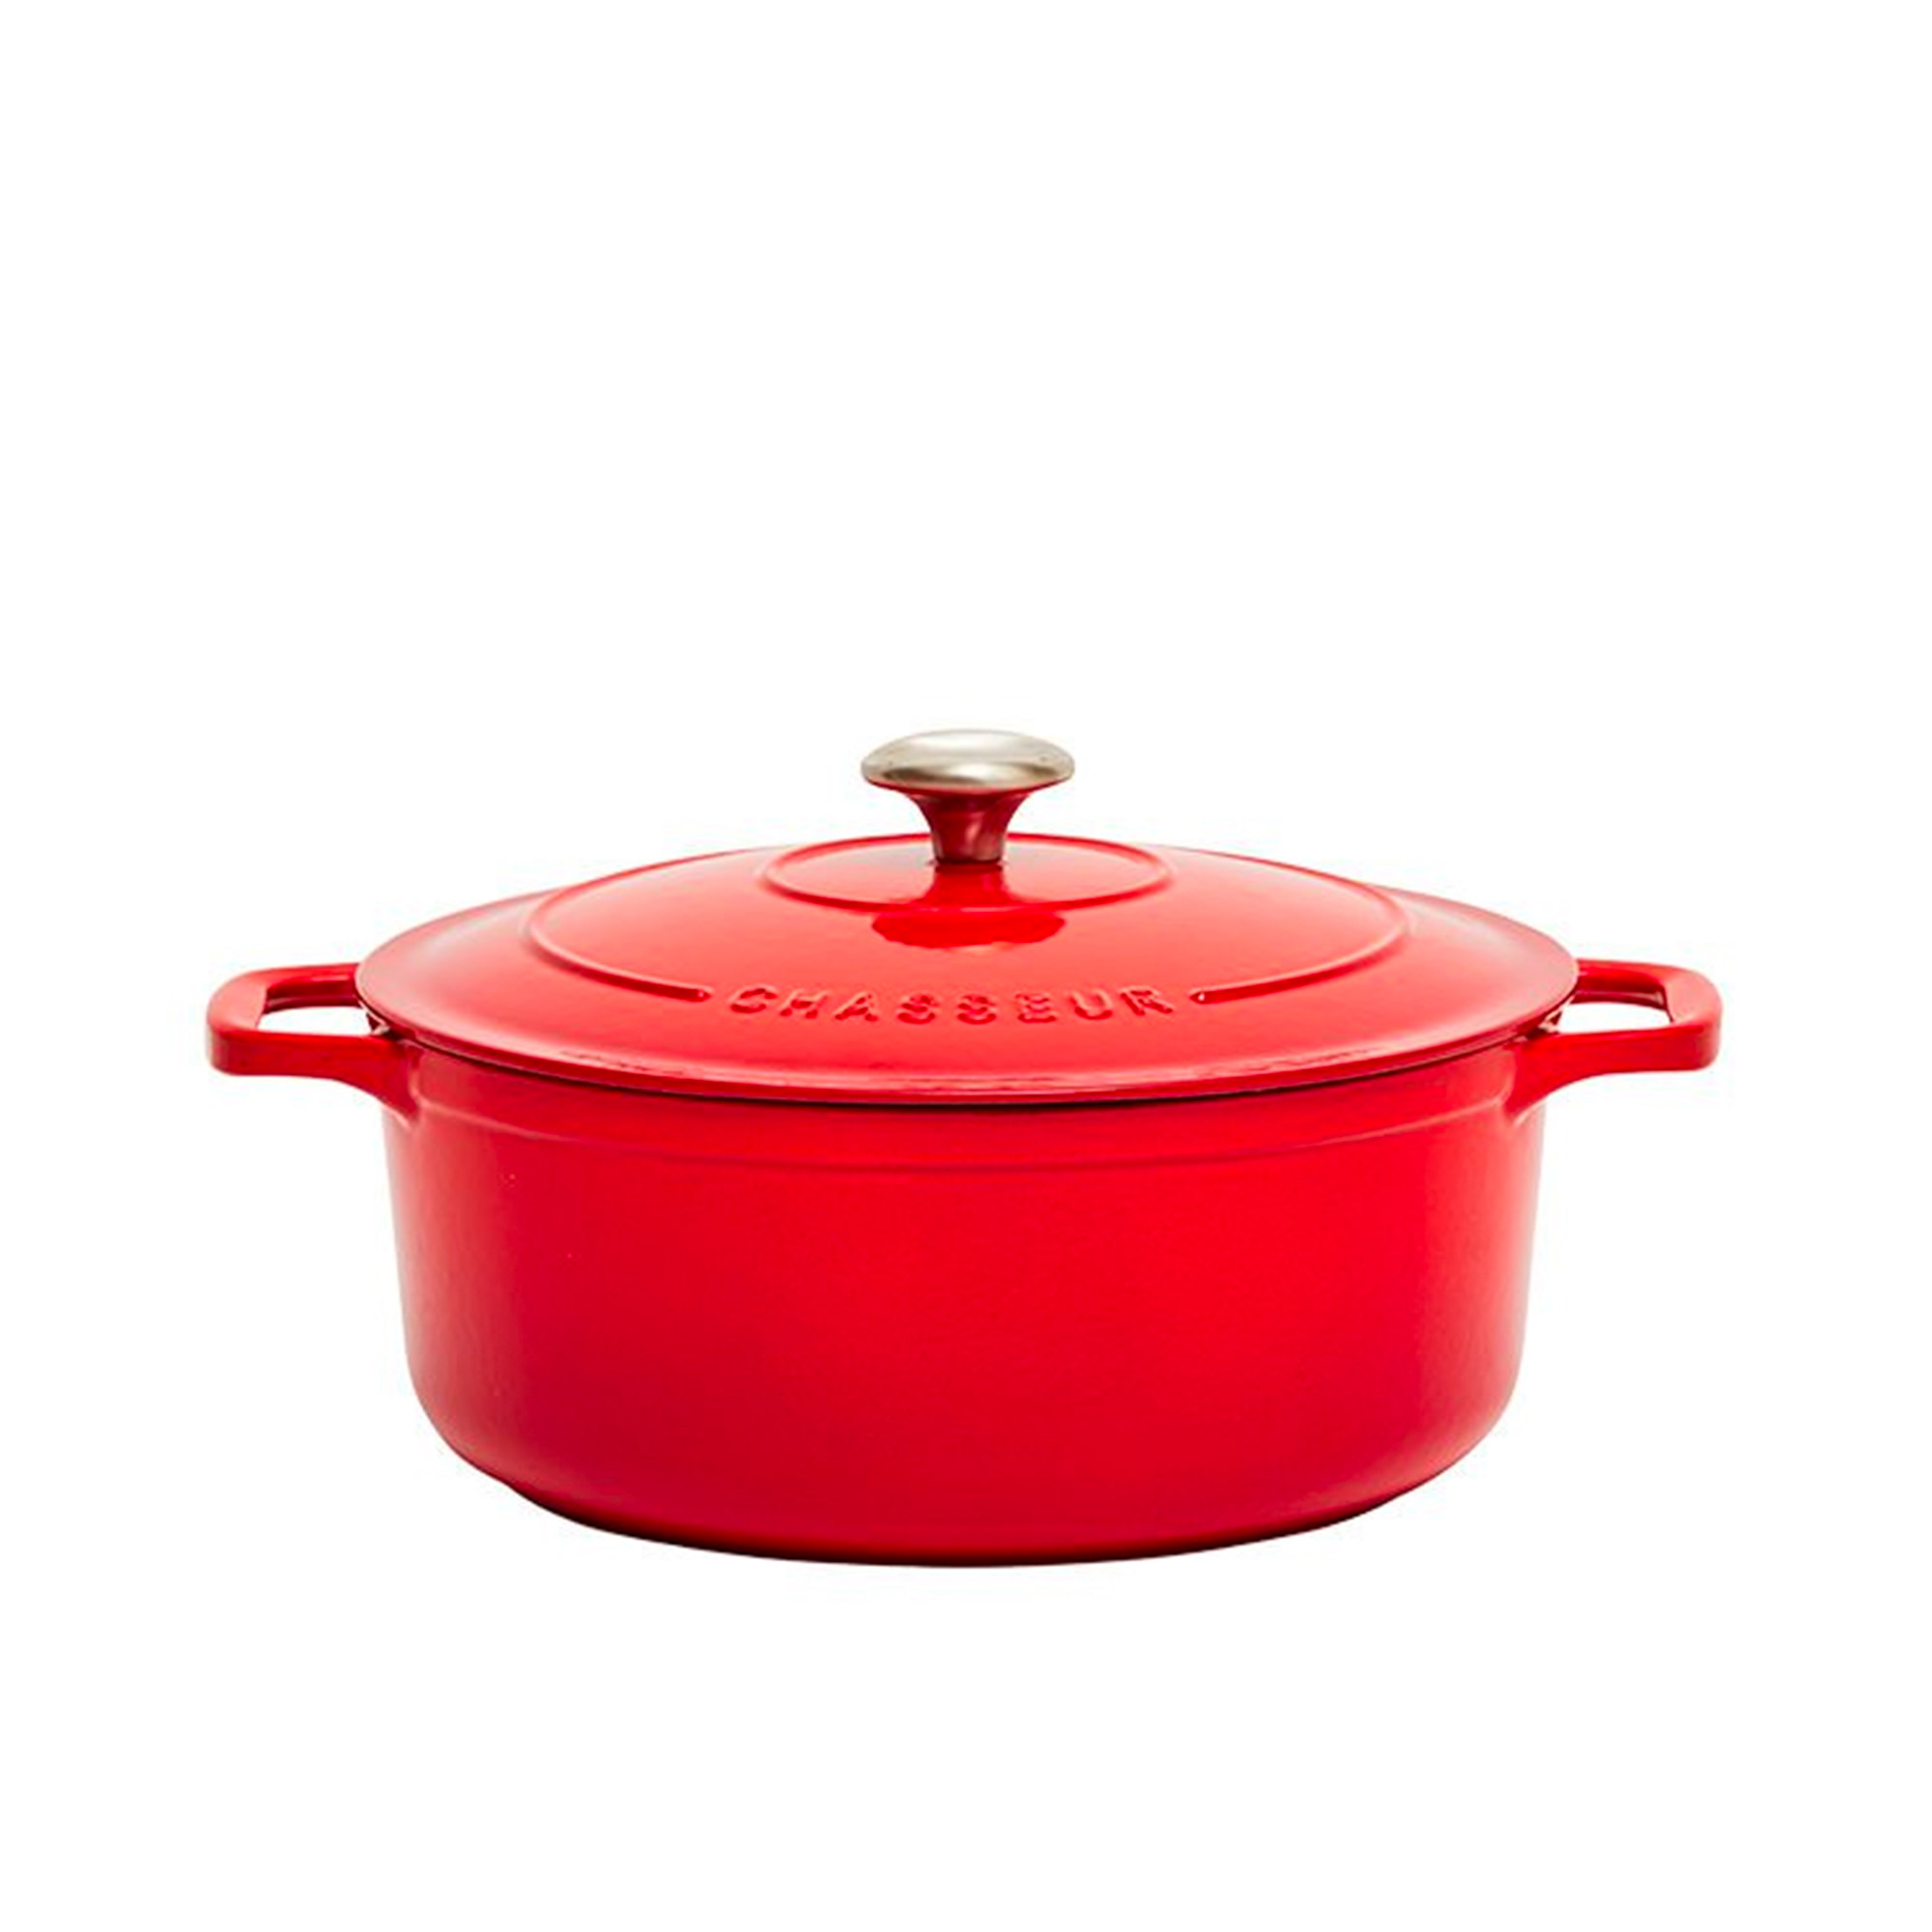 Chasseur Round French Oven 24cm - 4L Chilli Red